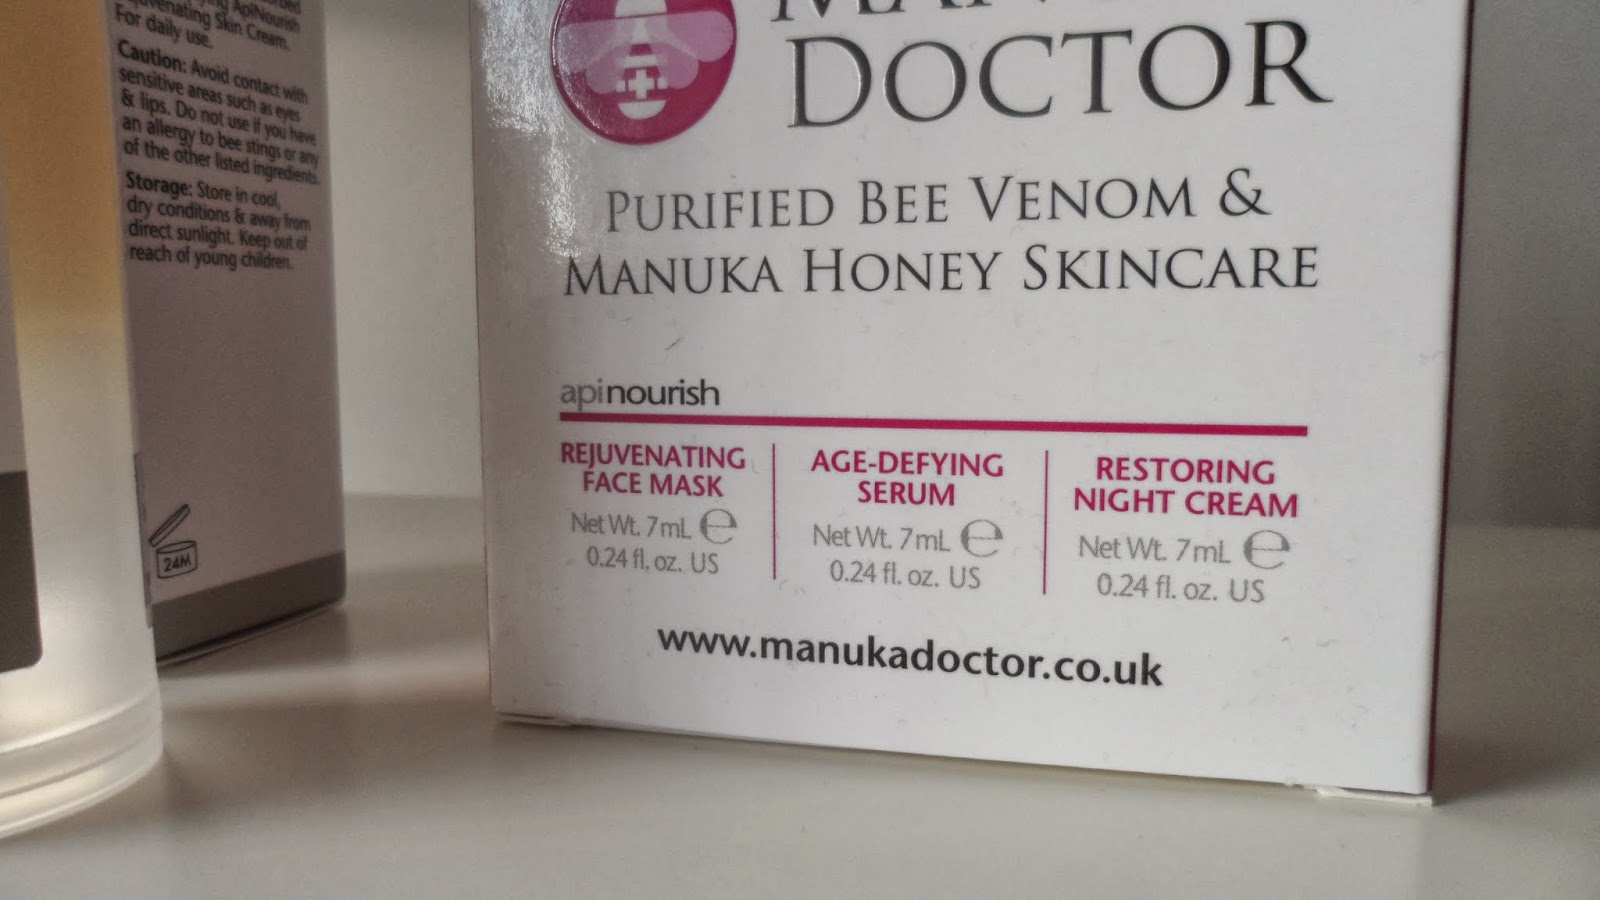 Manuka doctor apinourish trial set of 3